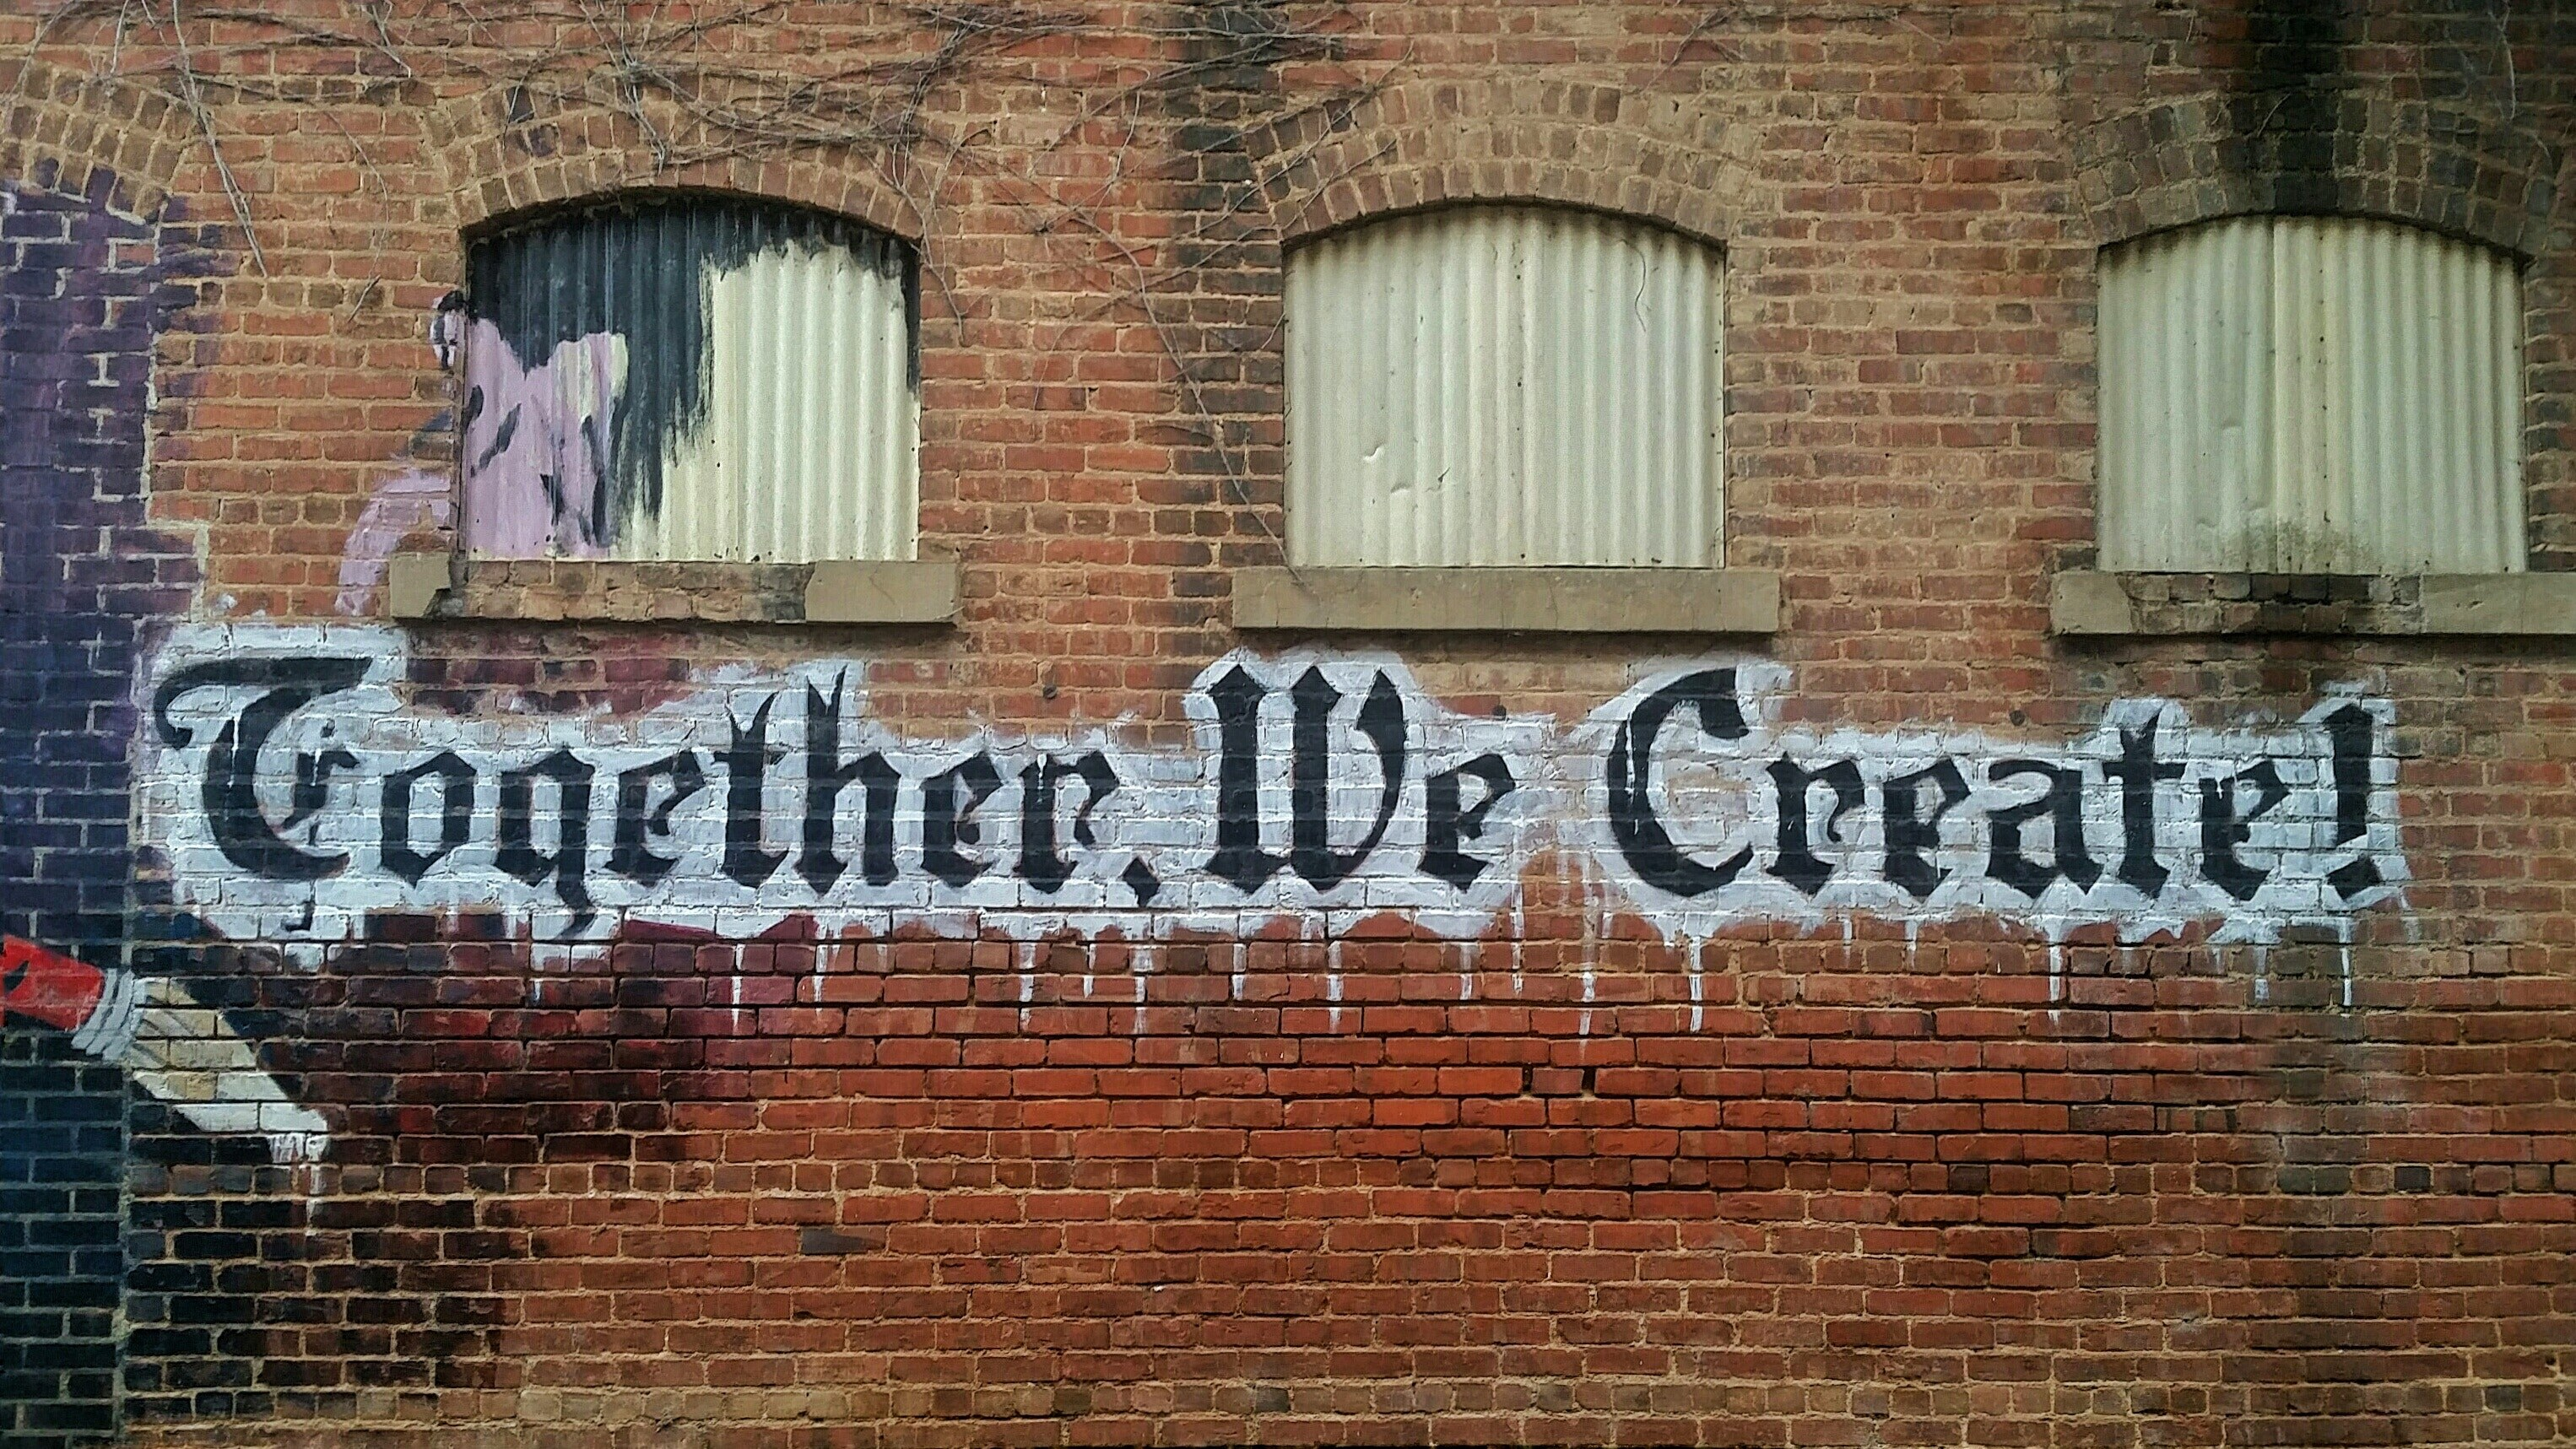 Togetherwecreate